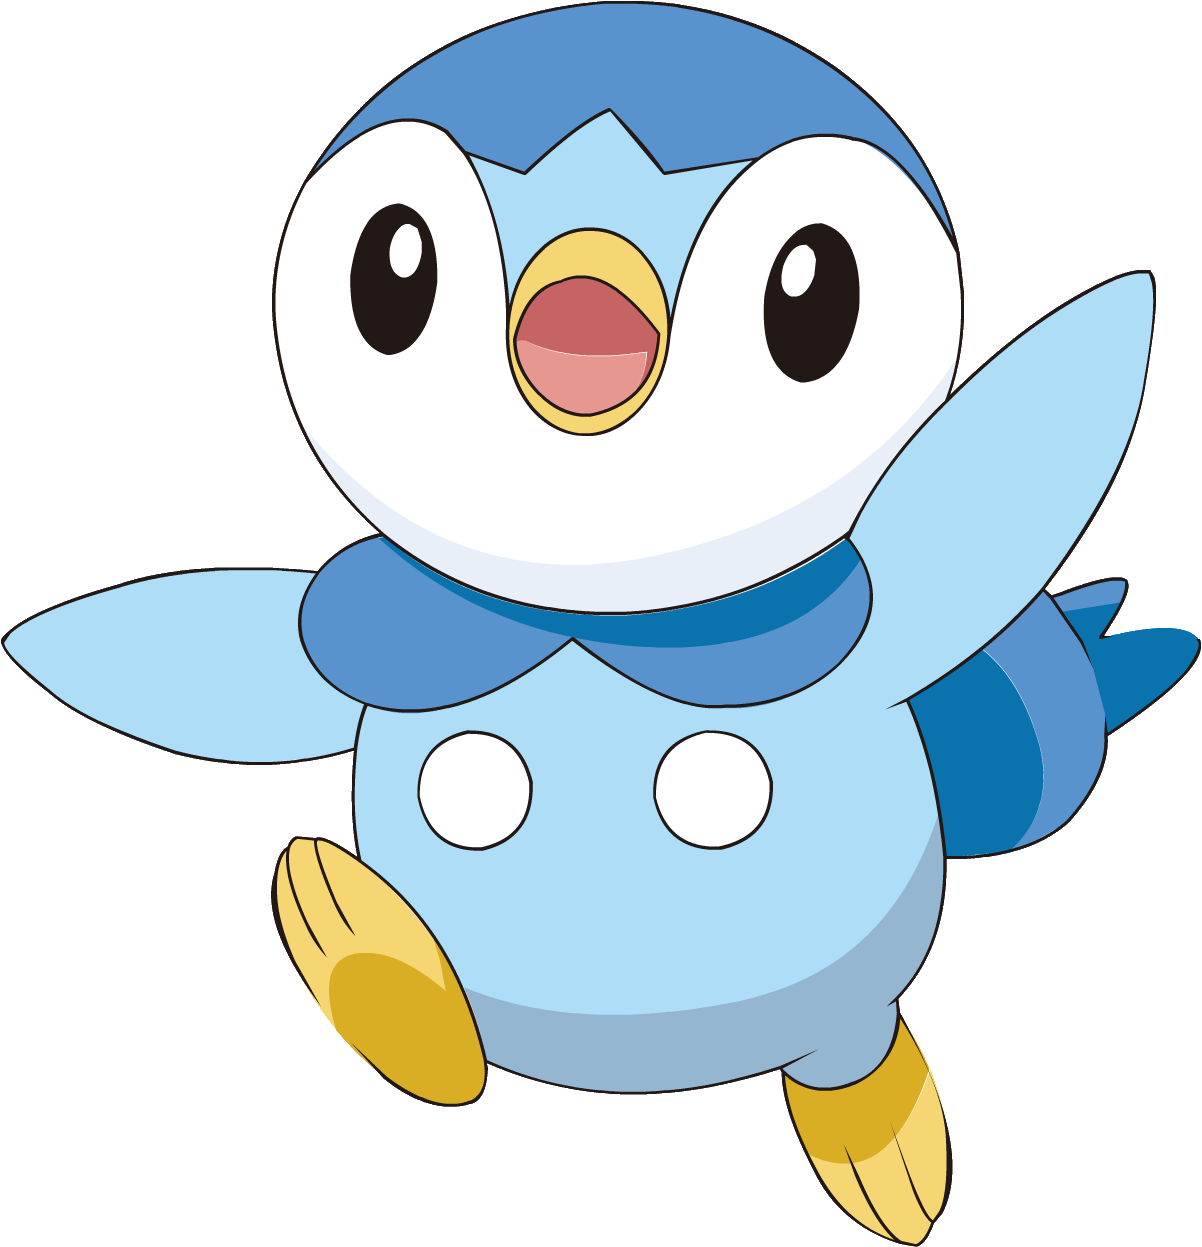 Image piplup dp anime. Pokeball clipart 8 bit